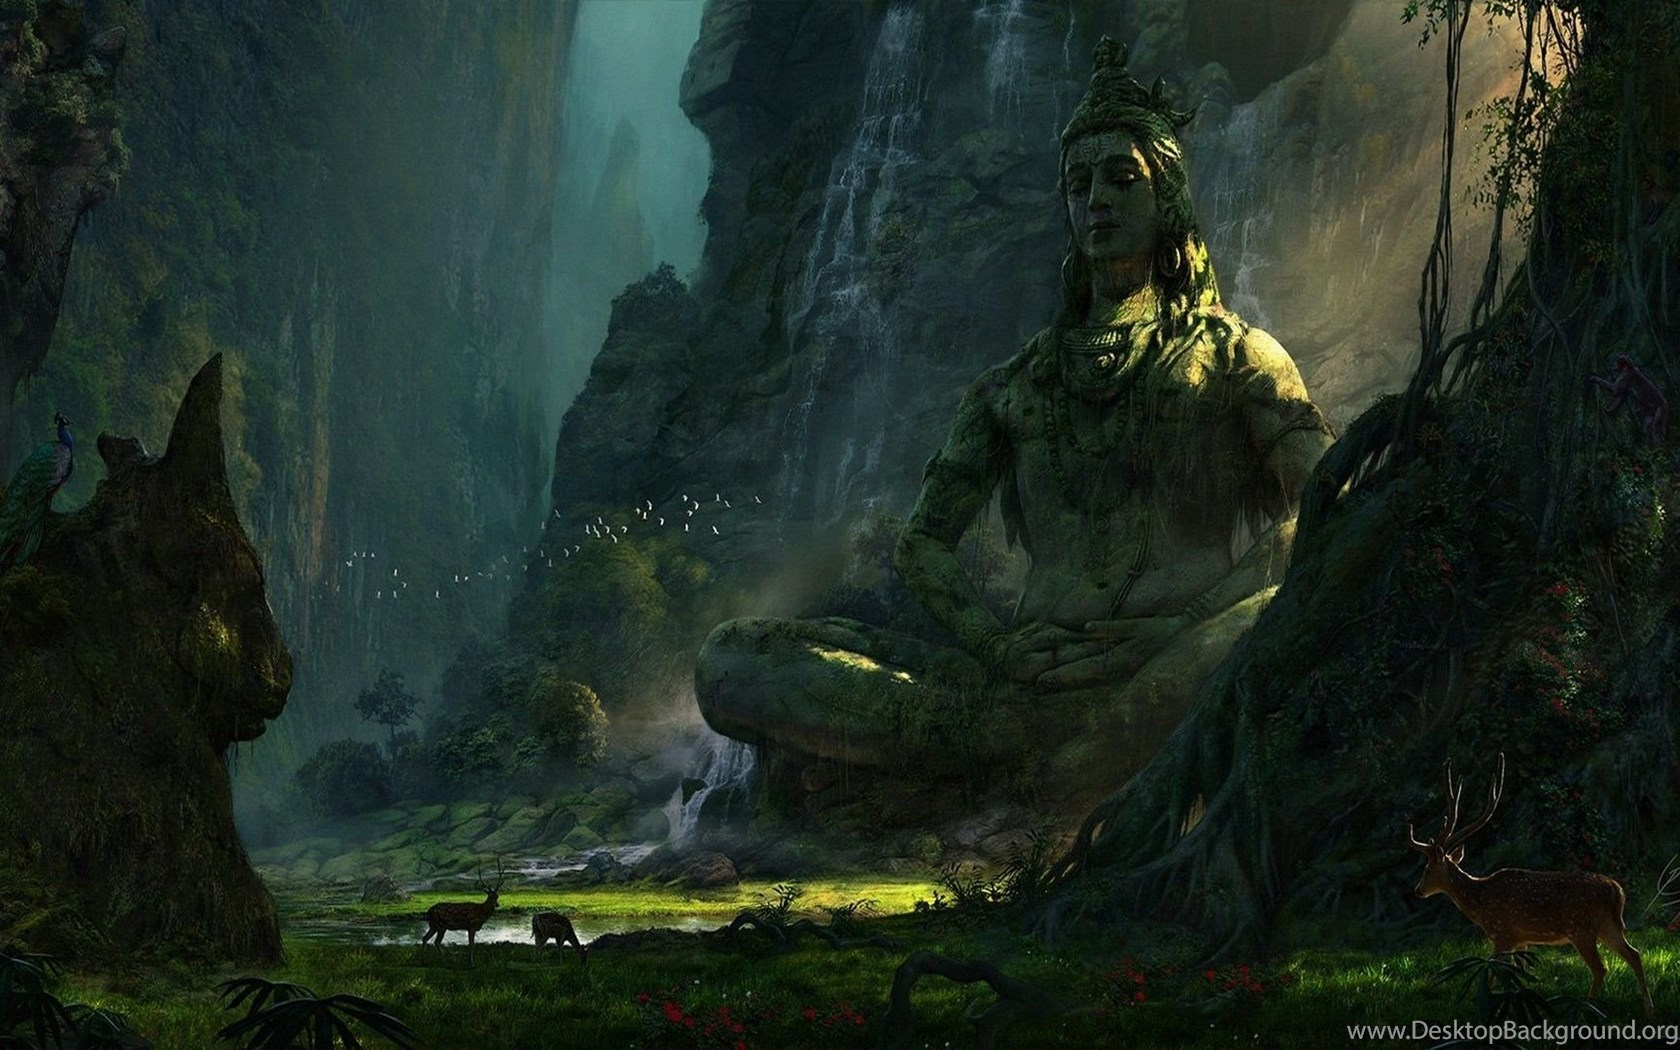 Lord Shiva Wallpapers 3d: Unexplored Ruins (Lord Shiva). : Wallpapers Desktop Background